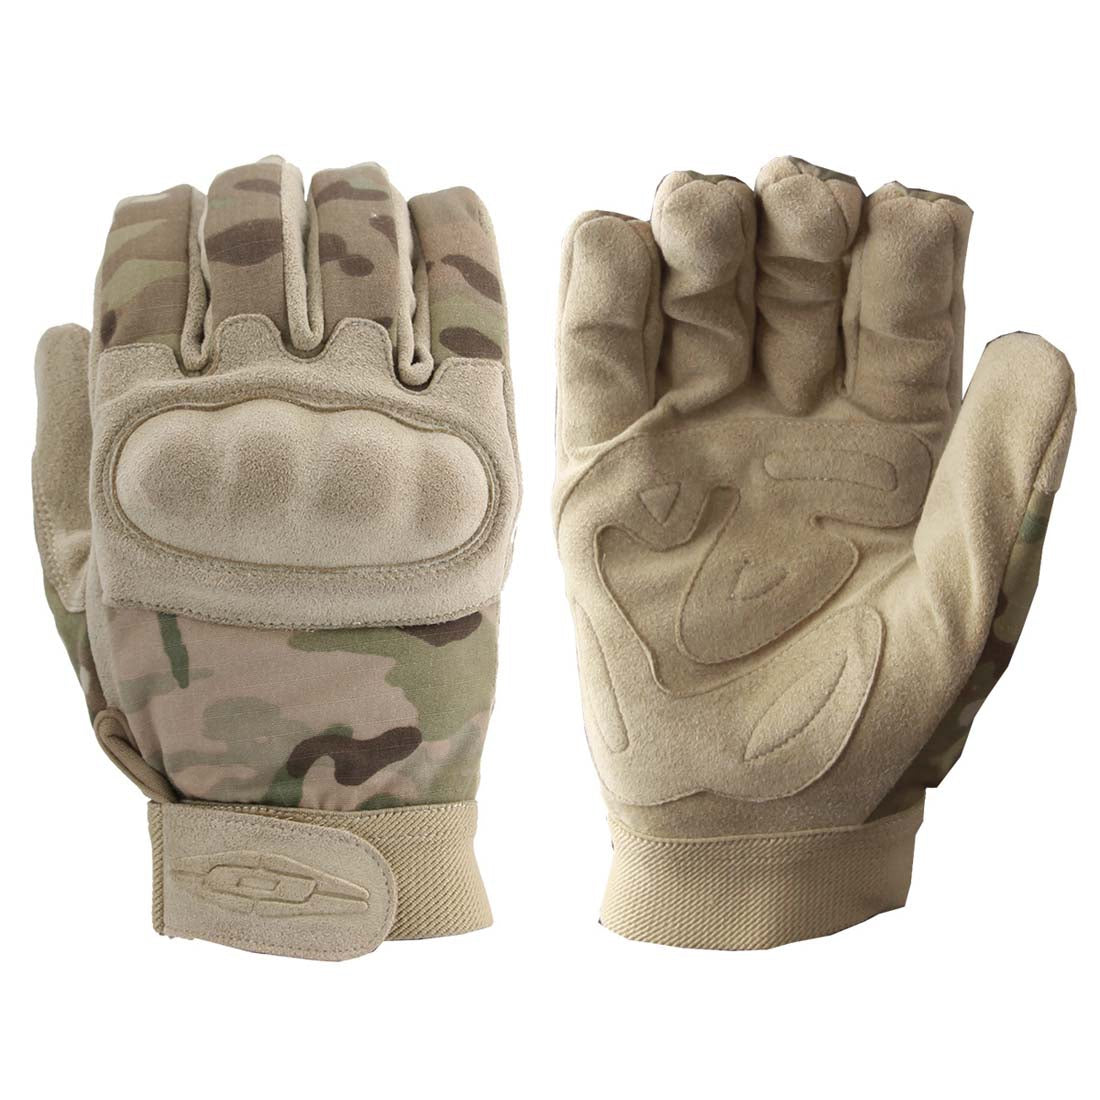 Damascus Gear Nexstar III - Medium Weight duty gloves (Multicam Camo)